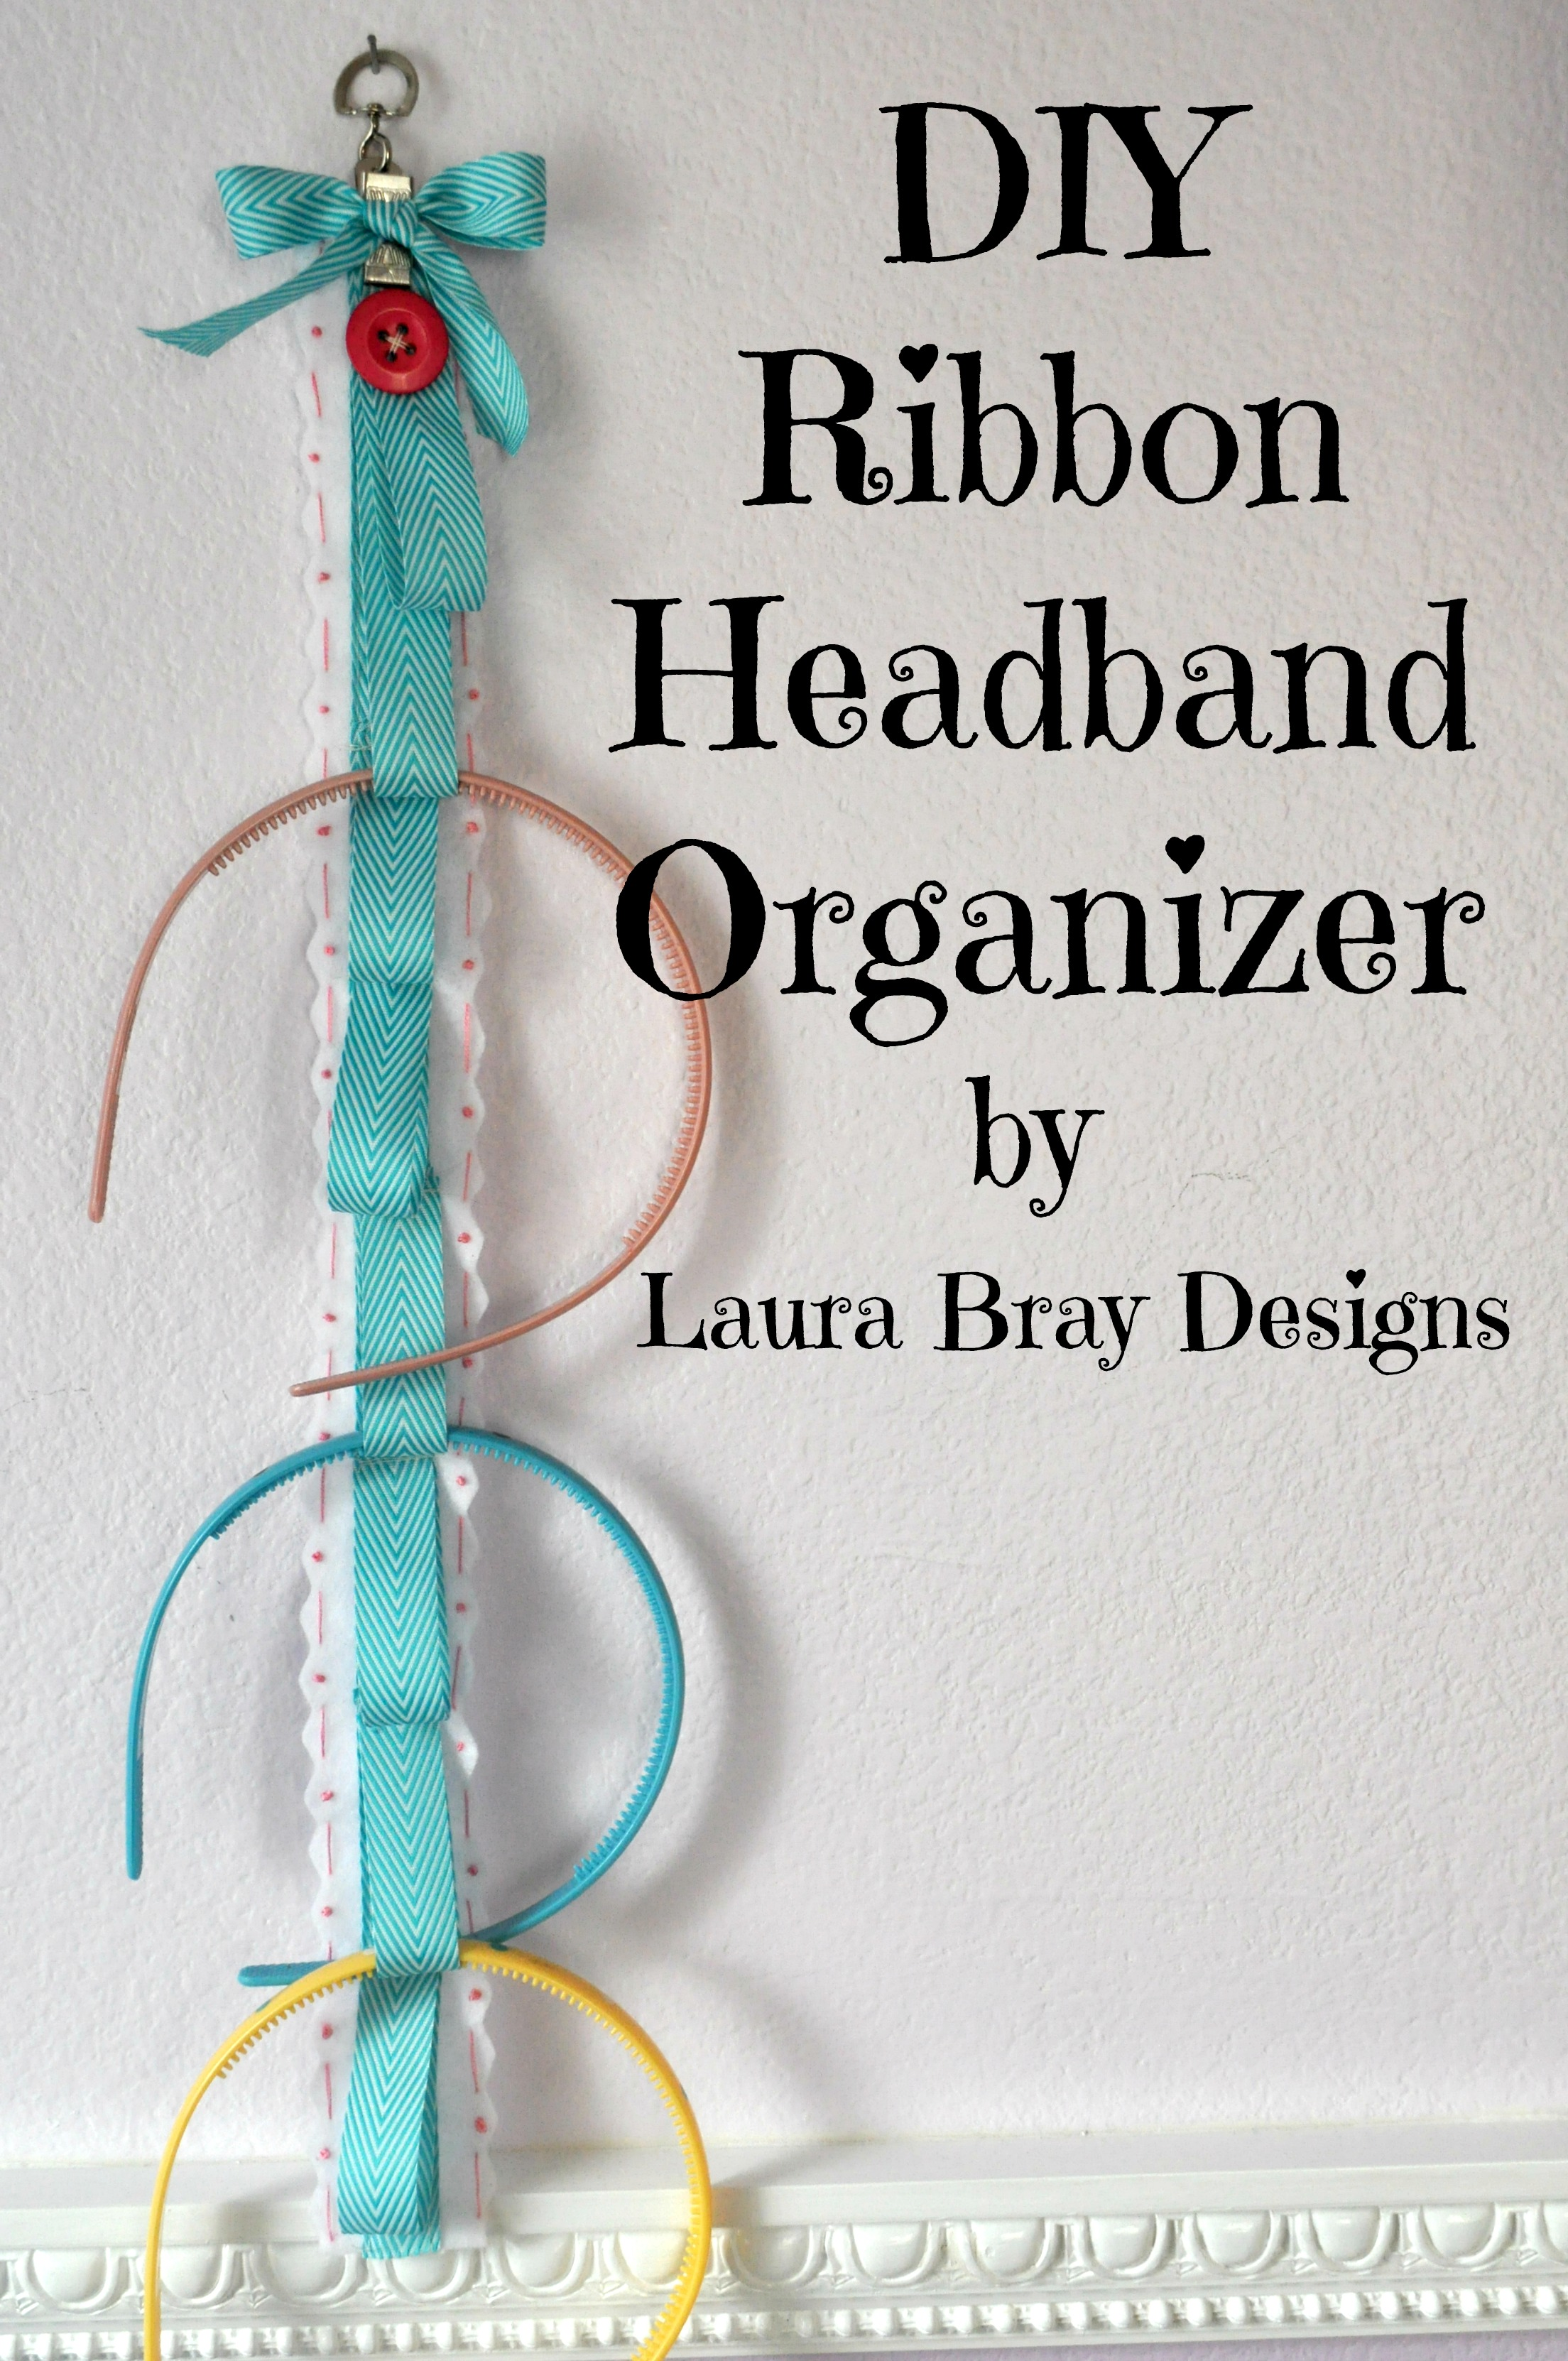 Buttons and ribbons blog hop diy headband organizer laura k bray diy ribbon headband organizer tutorial solutioingenieria Image collections